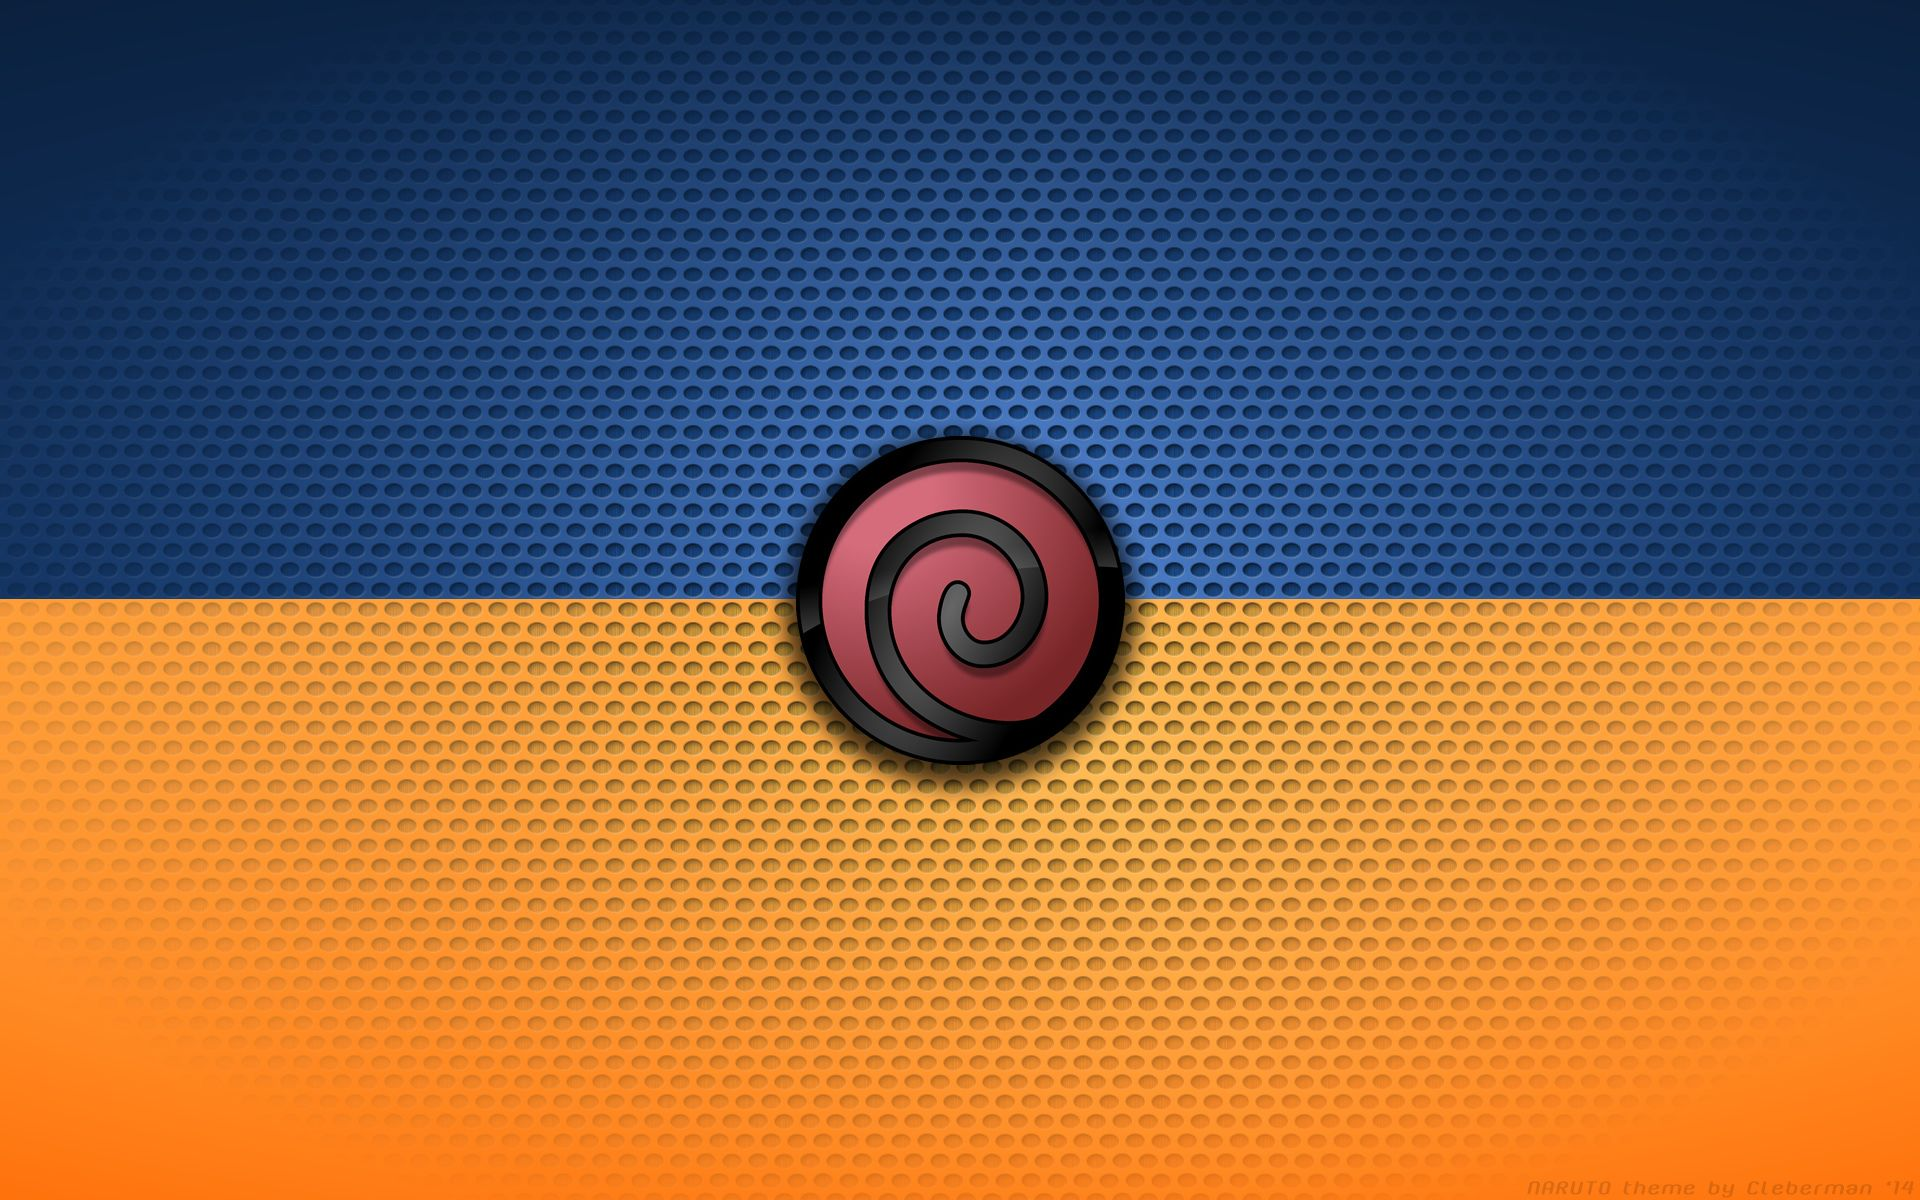 Good Wallpaper Logo Naruto - 95d4320bdd4964330de5a465c8e37e74  Photograph_928563.jpg